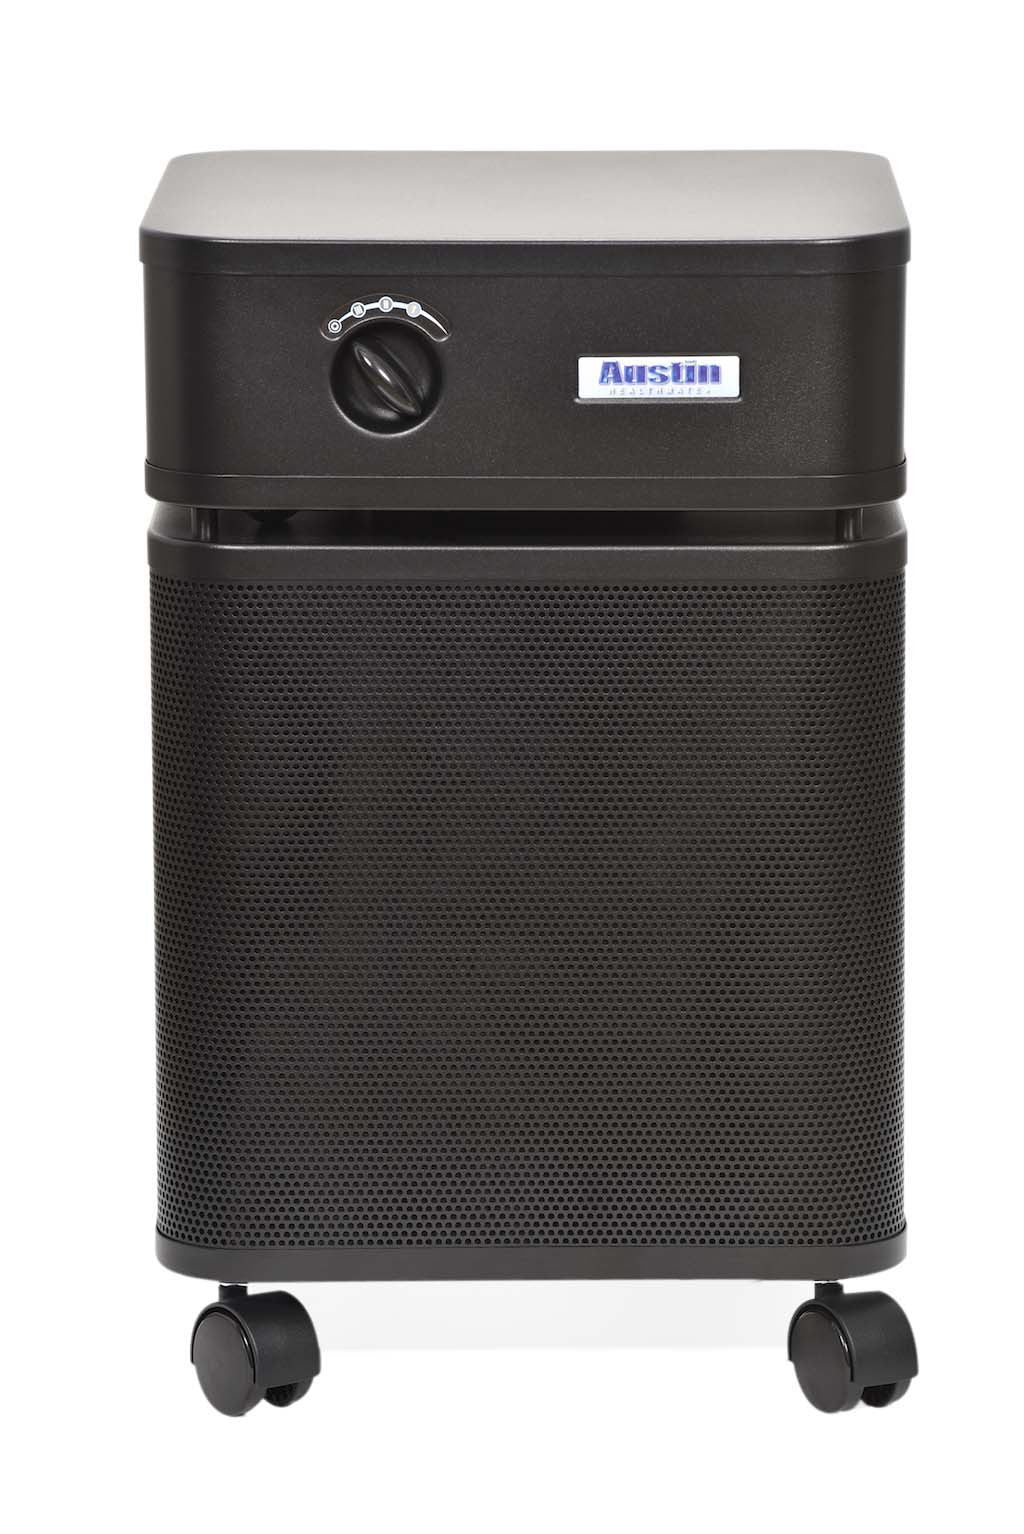 HealthMate + Plus HM450 Standard HEPA Air Purifier